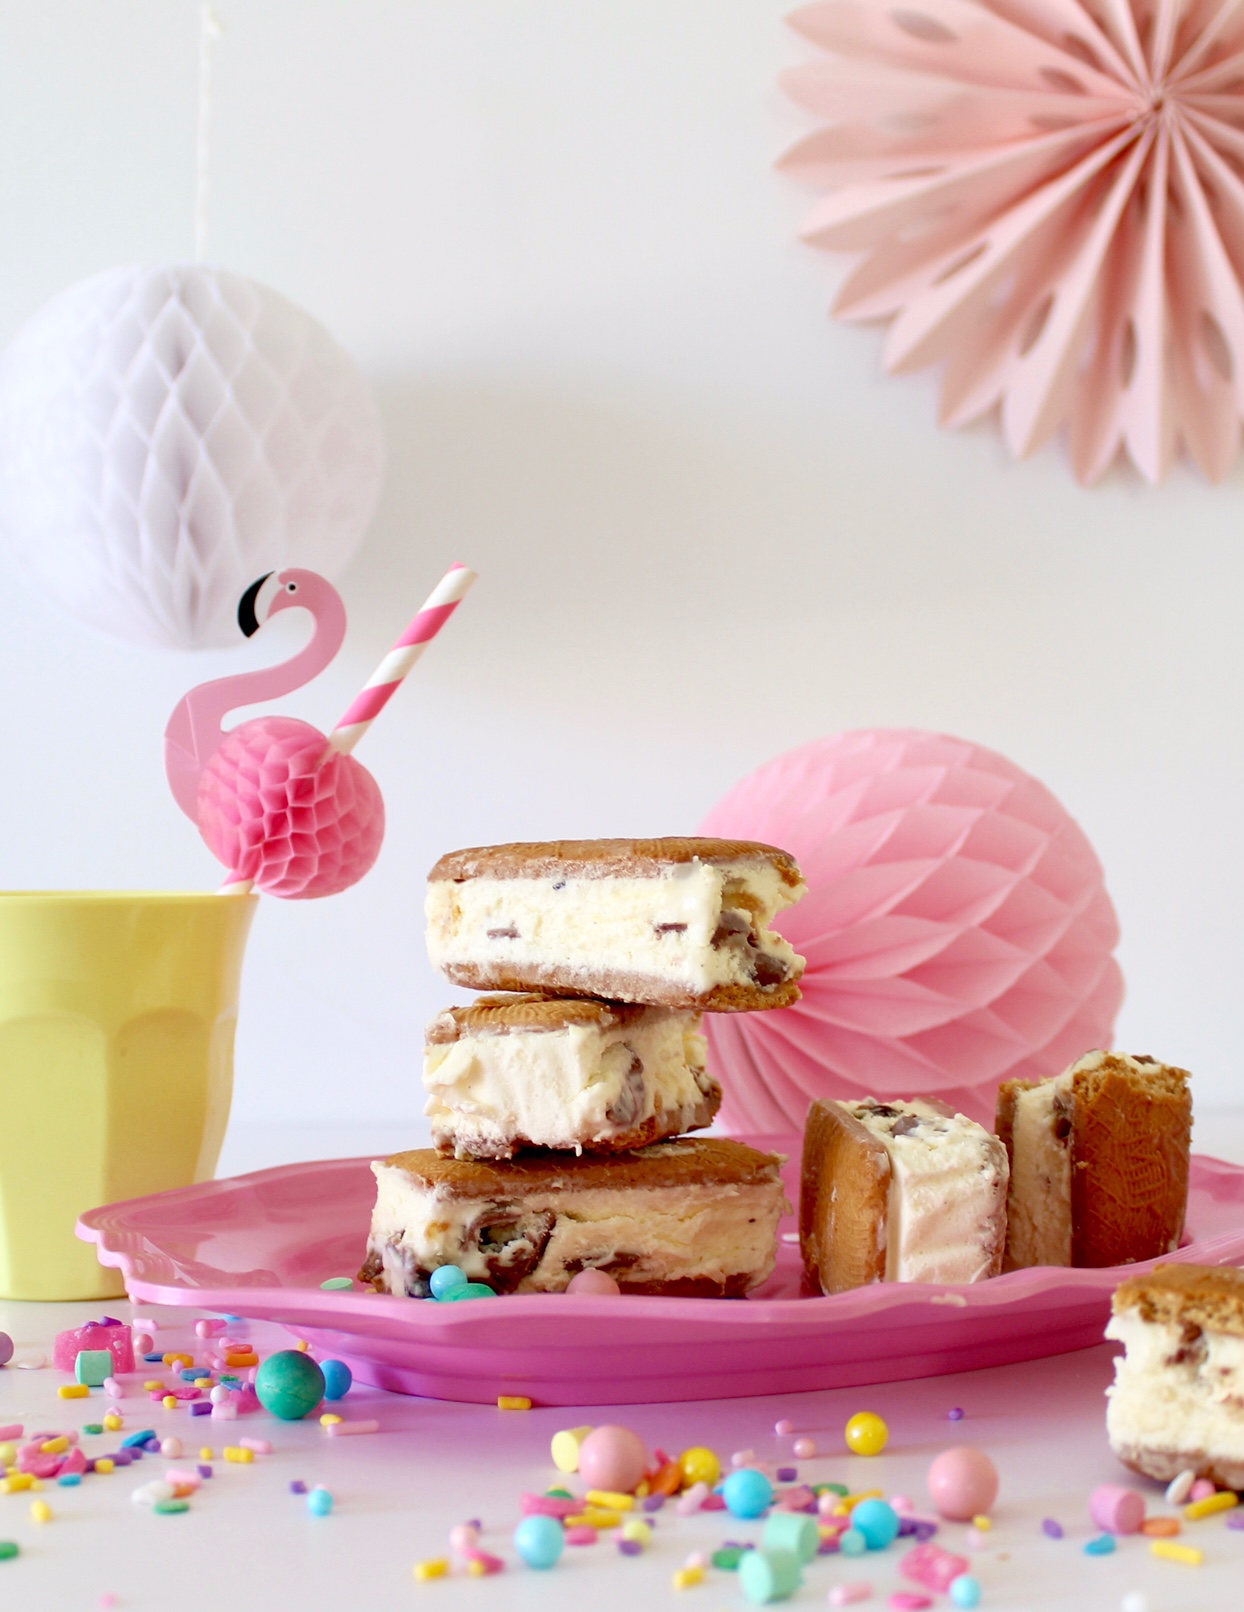 Ice-cream sandwiches recipe